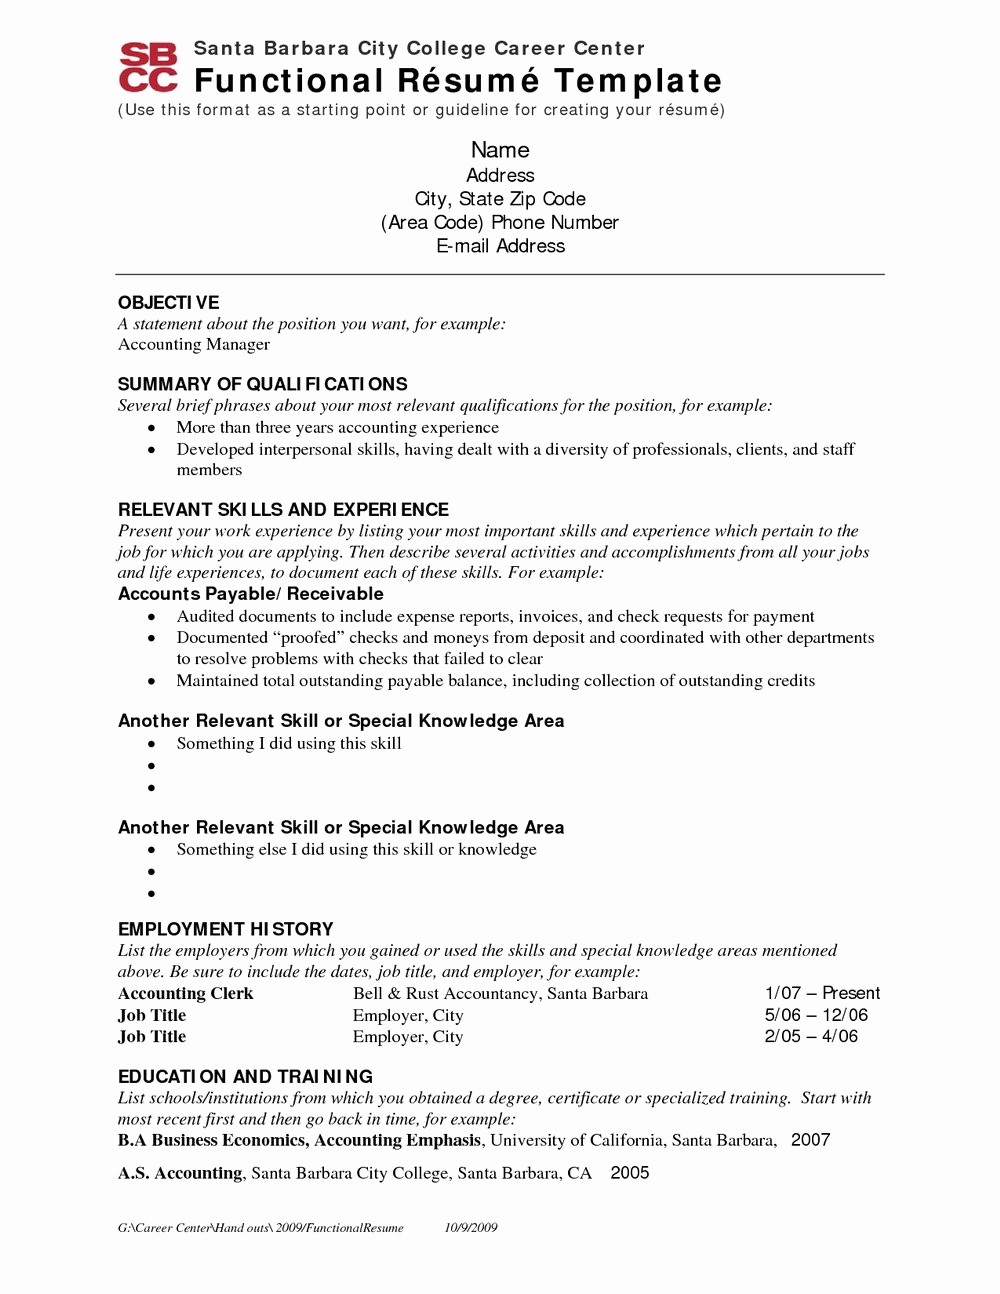 Free Functional Resume Template 2018 Luxury Executive Resume Template Free Download